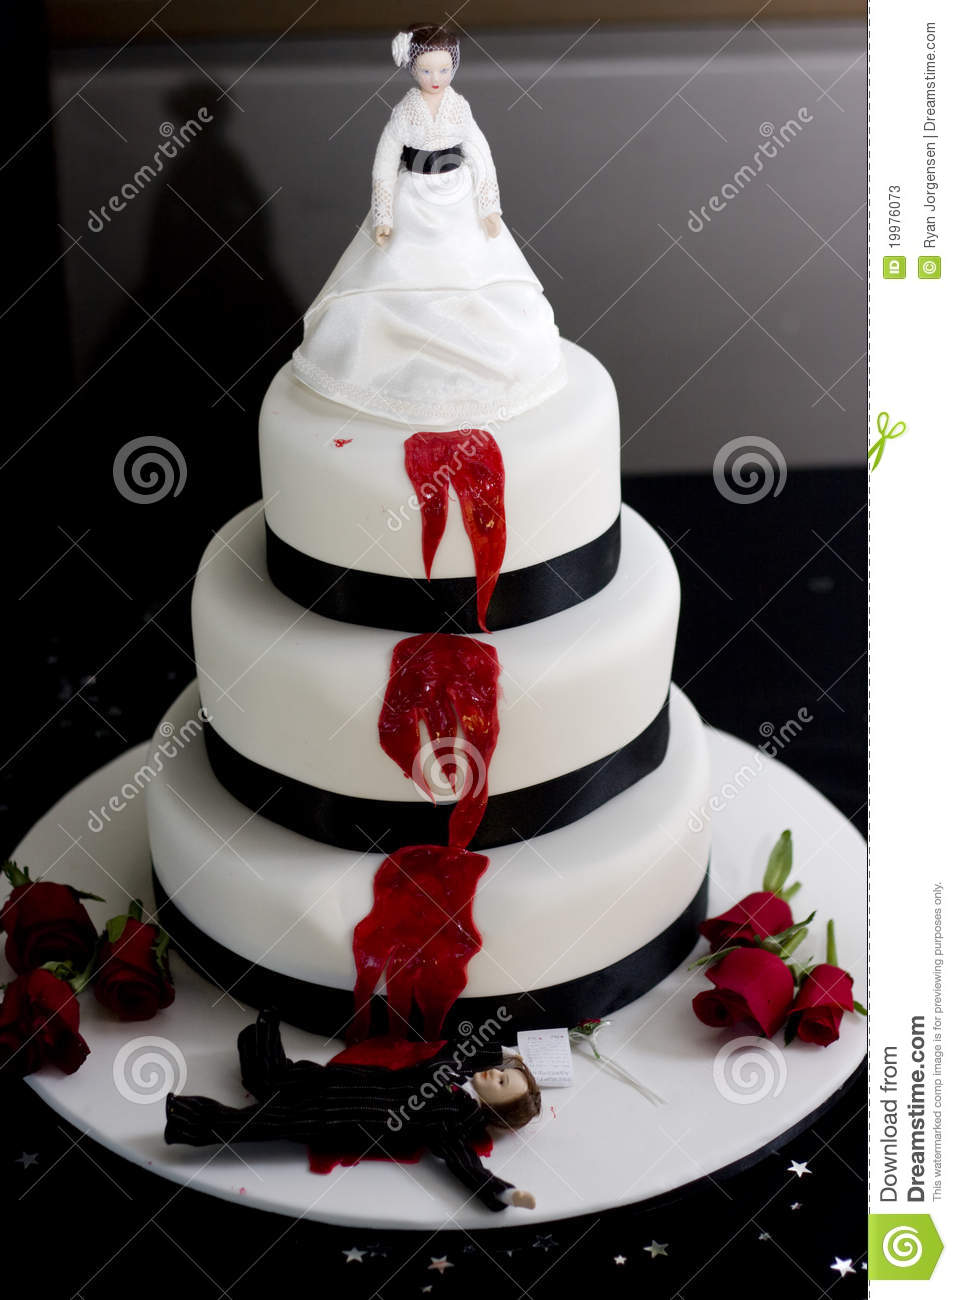 Bride And Groom Wedding Cake Designs